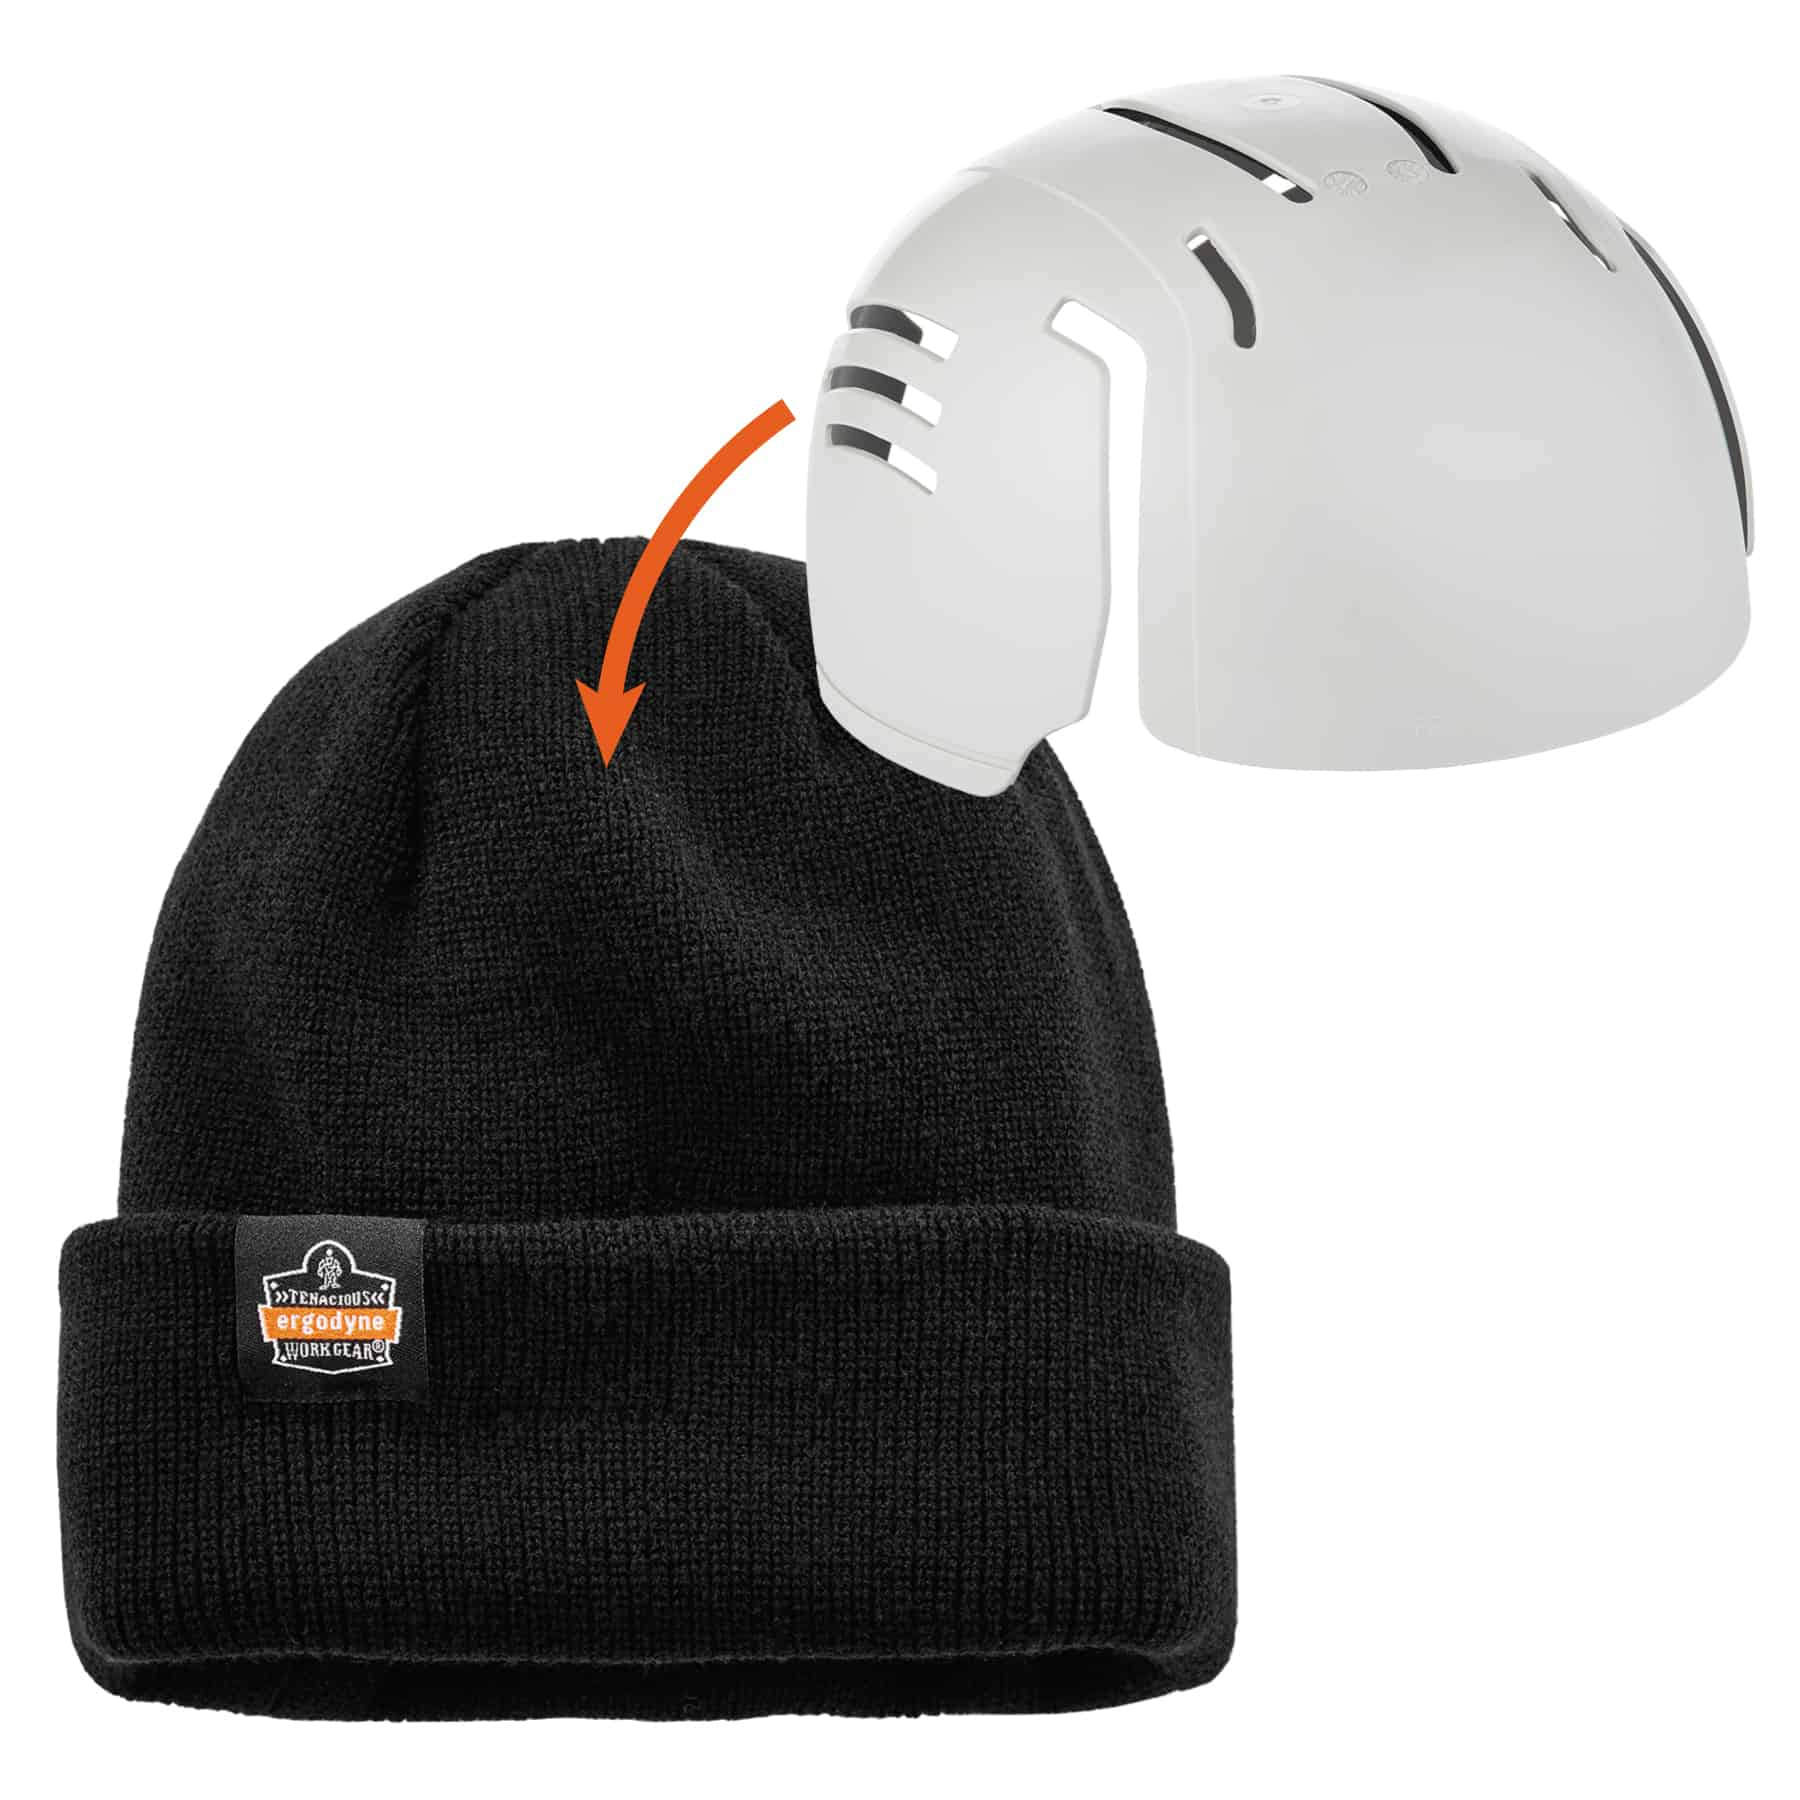 Ergodyne 6811ZI  Black Rib Knit Hat with Zipper for Bump Cap Insert with Insert